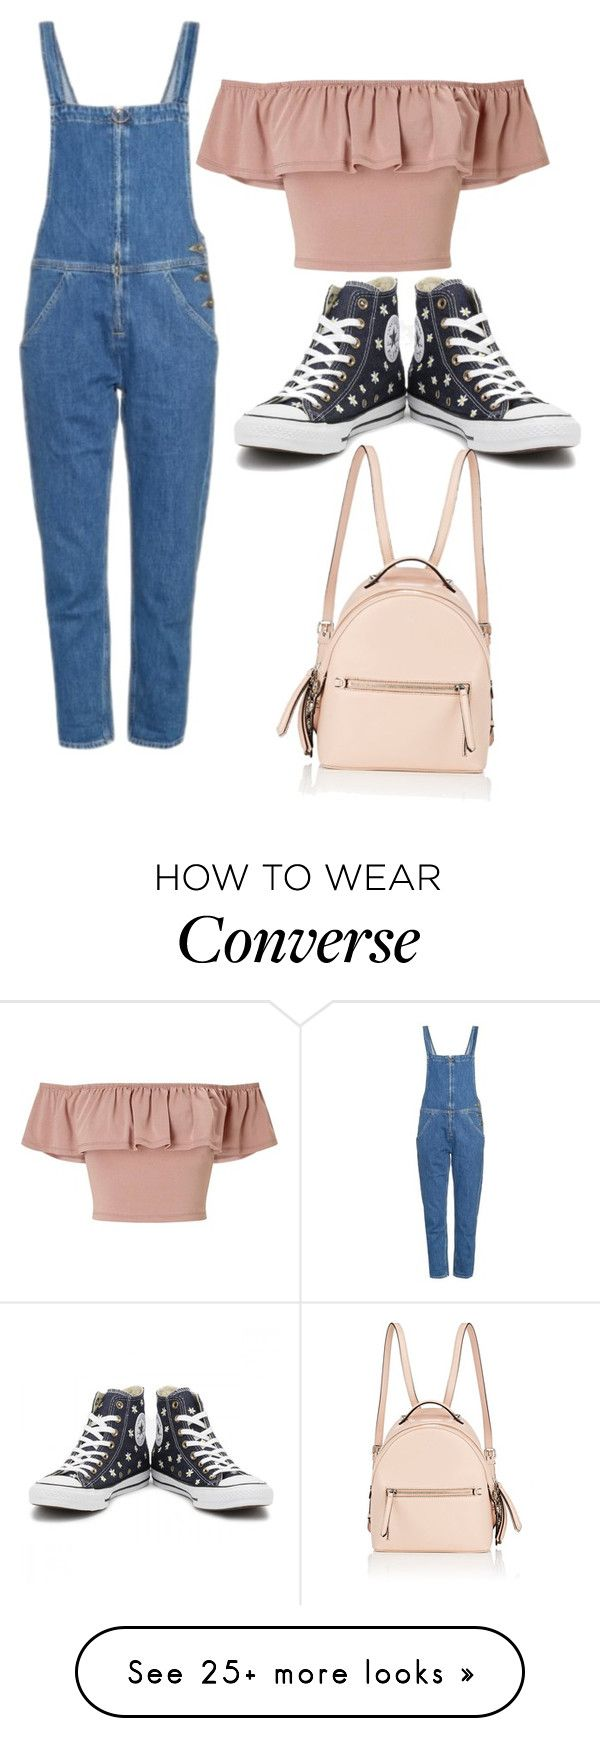 """Untitled #53"" by ranimhr on Polyvore featuring M.i.h Jeans, Miss Selfridge, Converse and Fendi"